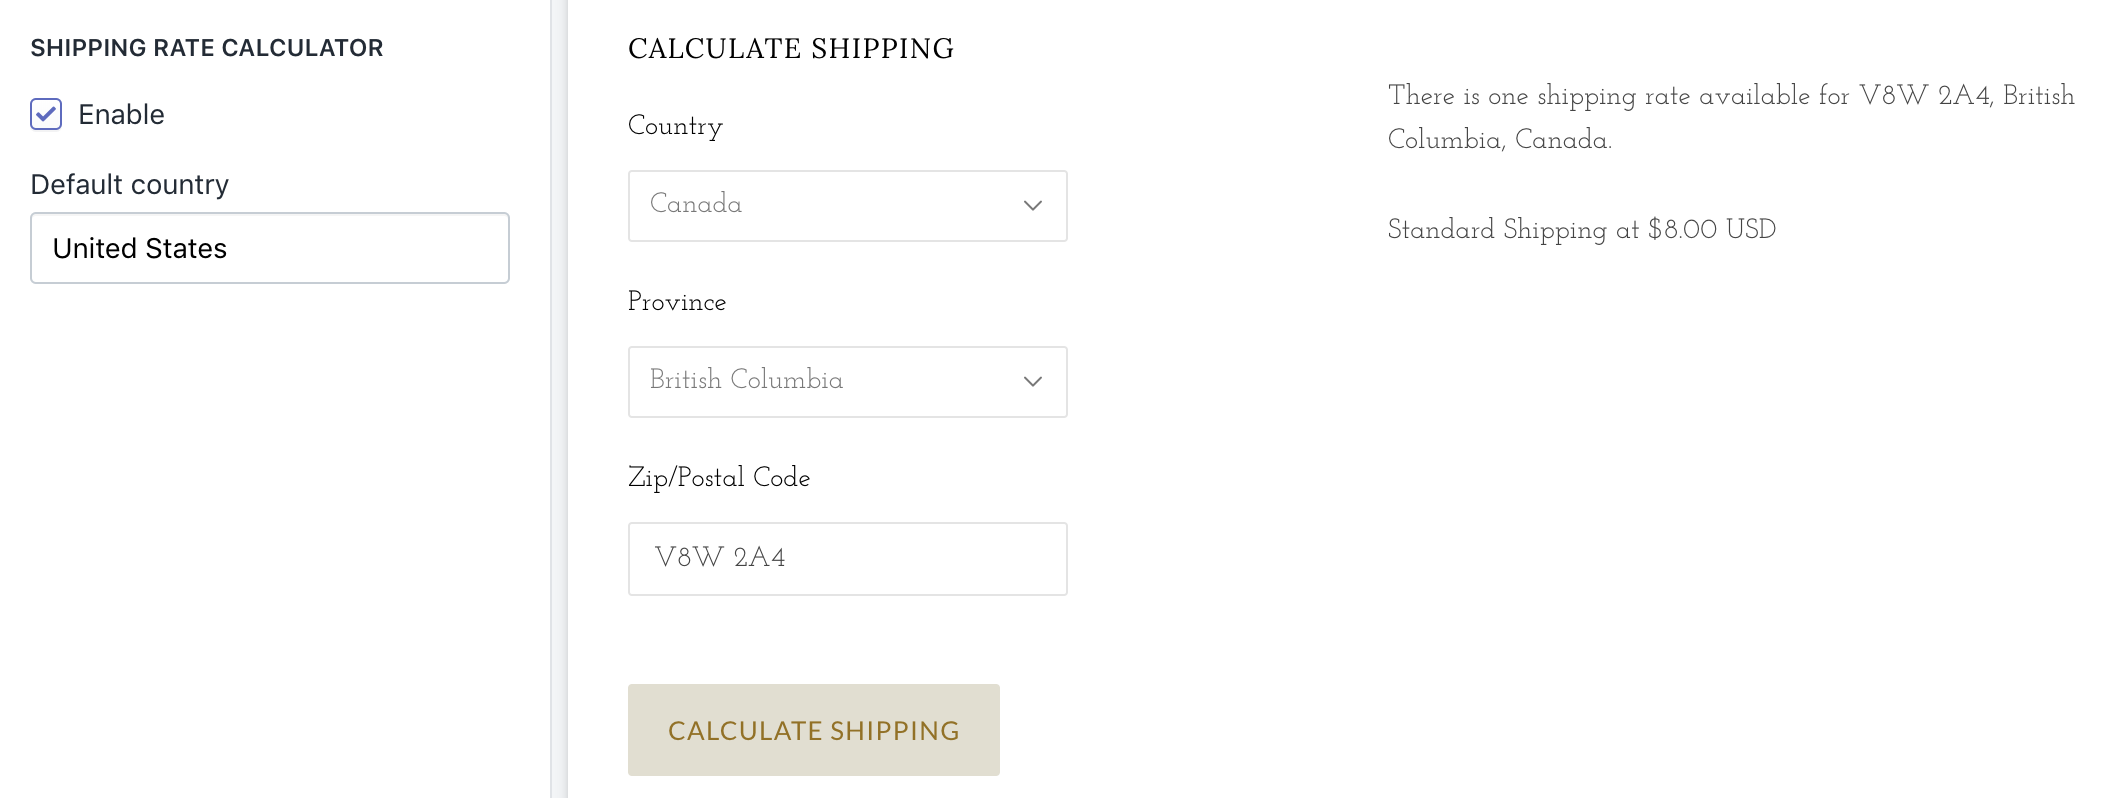 Shipping rate calculator enabled on Grid Bright cart page